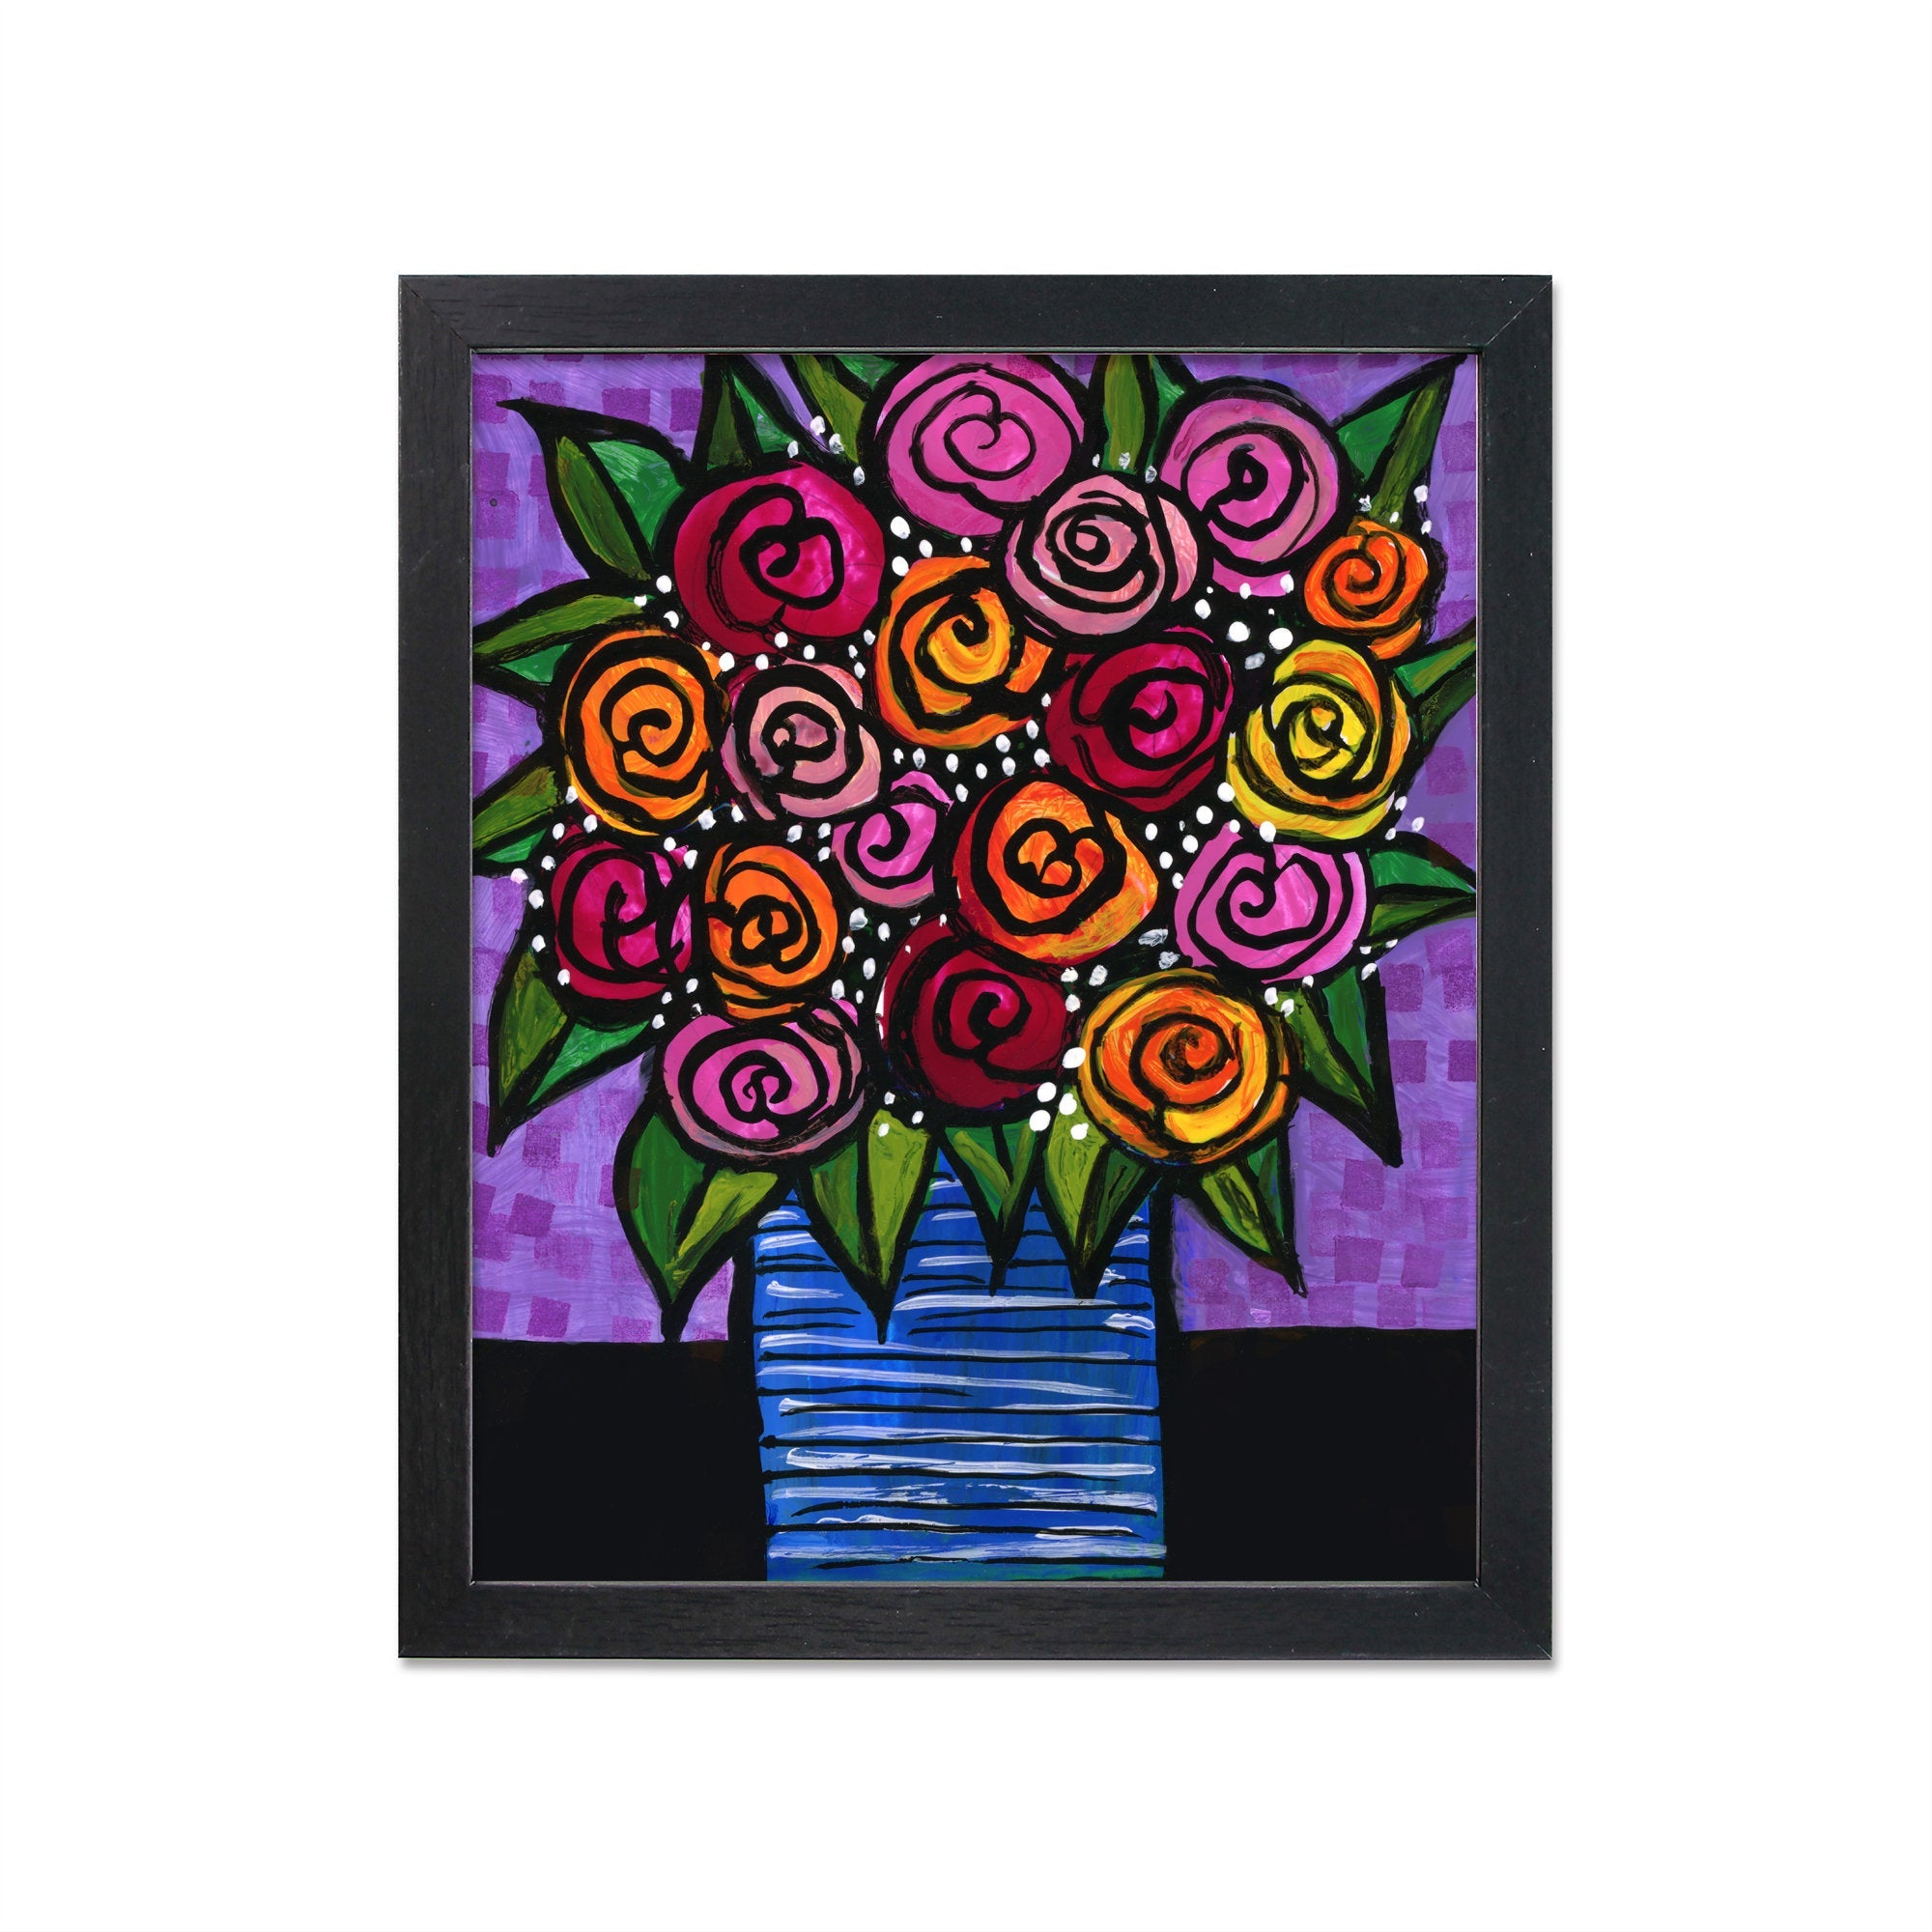 Whimsical Vase of Roses Print